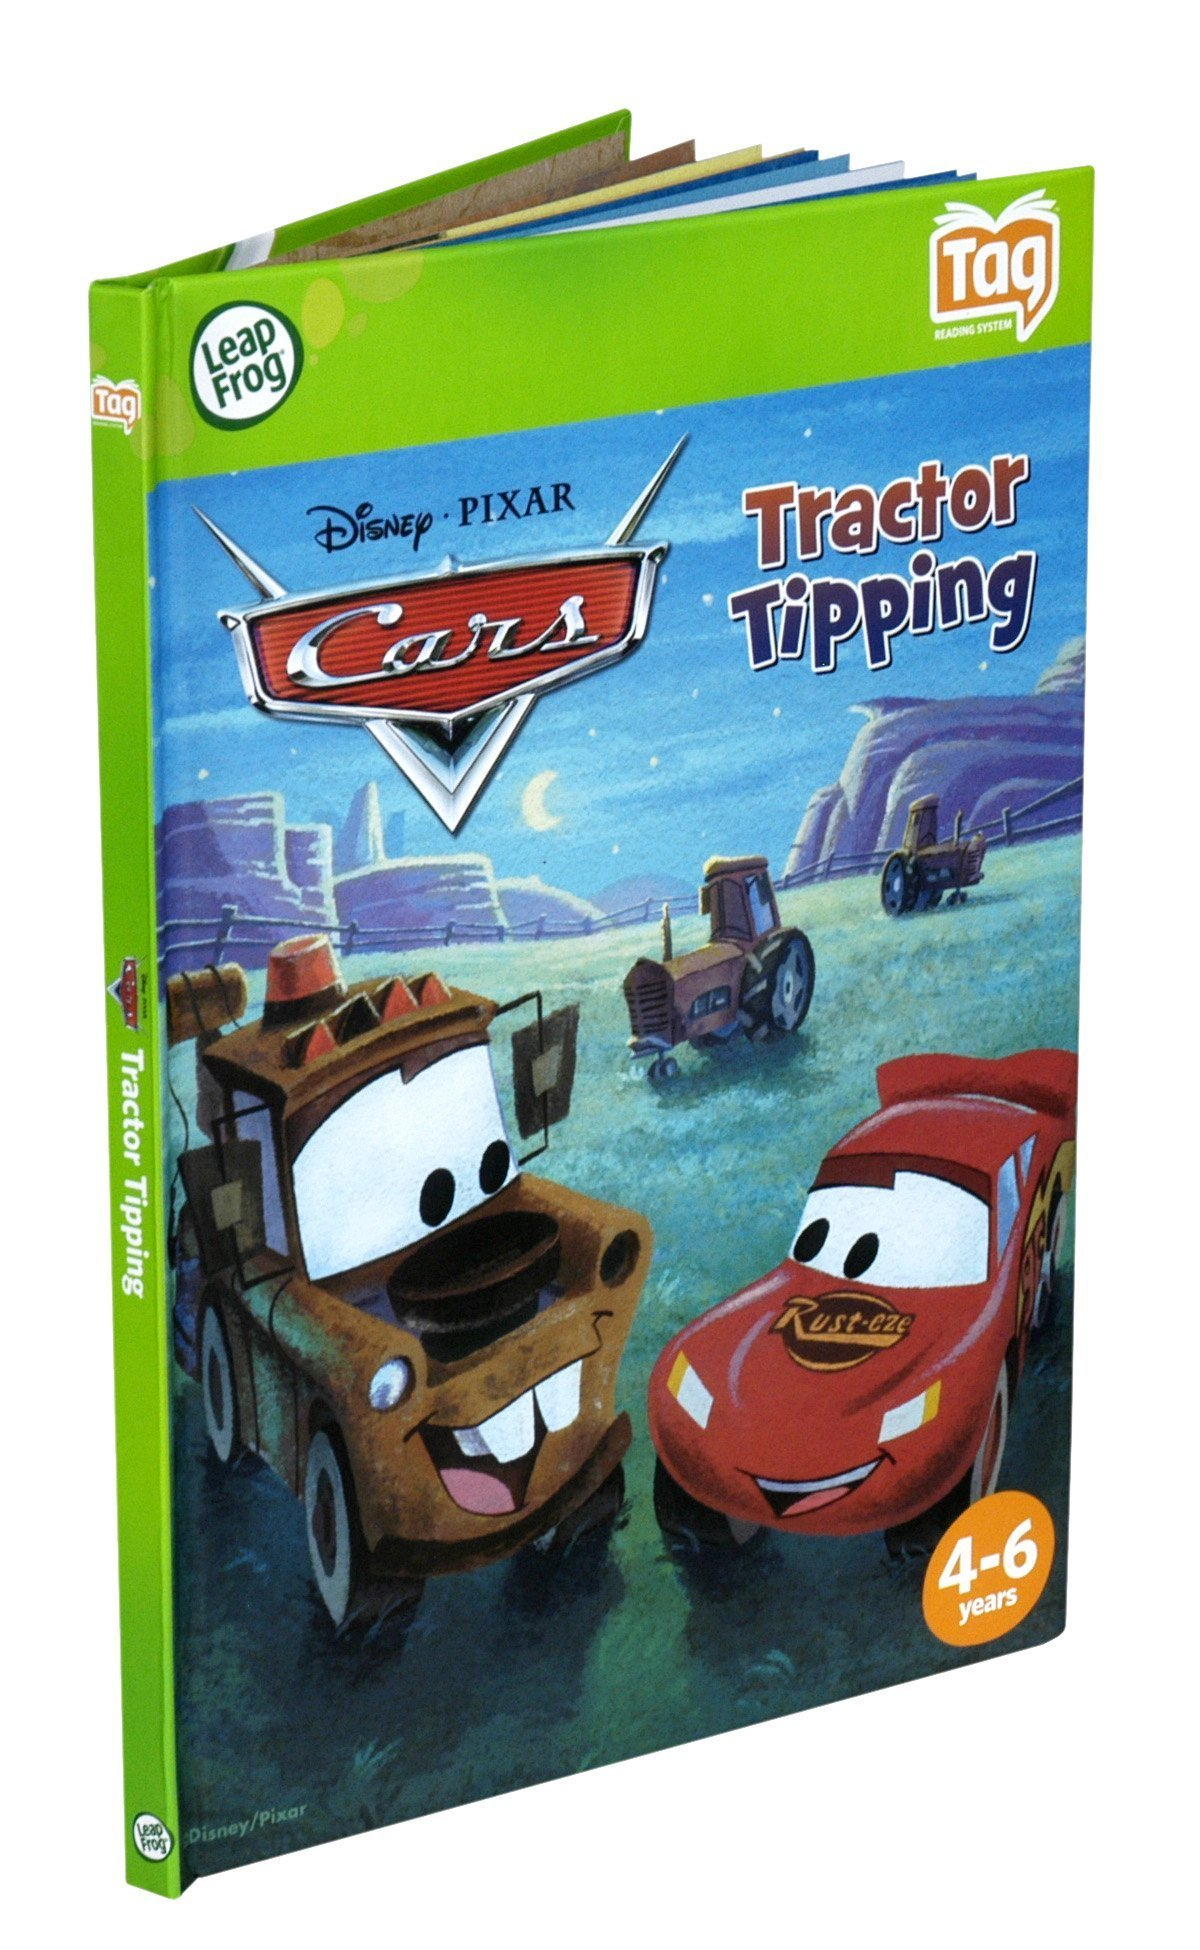 LeapFrog Tag Activity Storybook Cars Tractor Tipping by LeapFrog (Image #1)